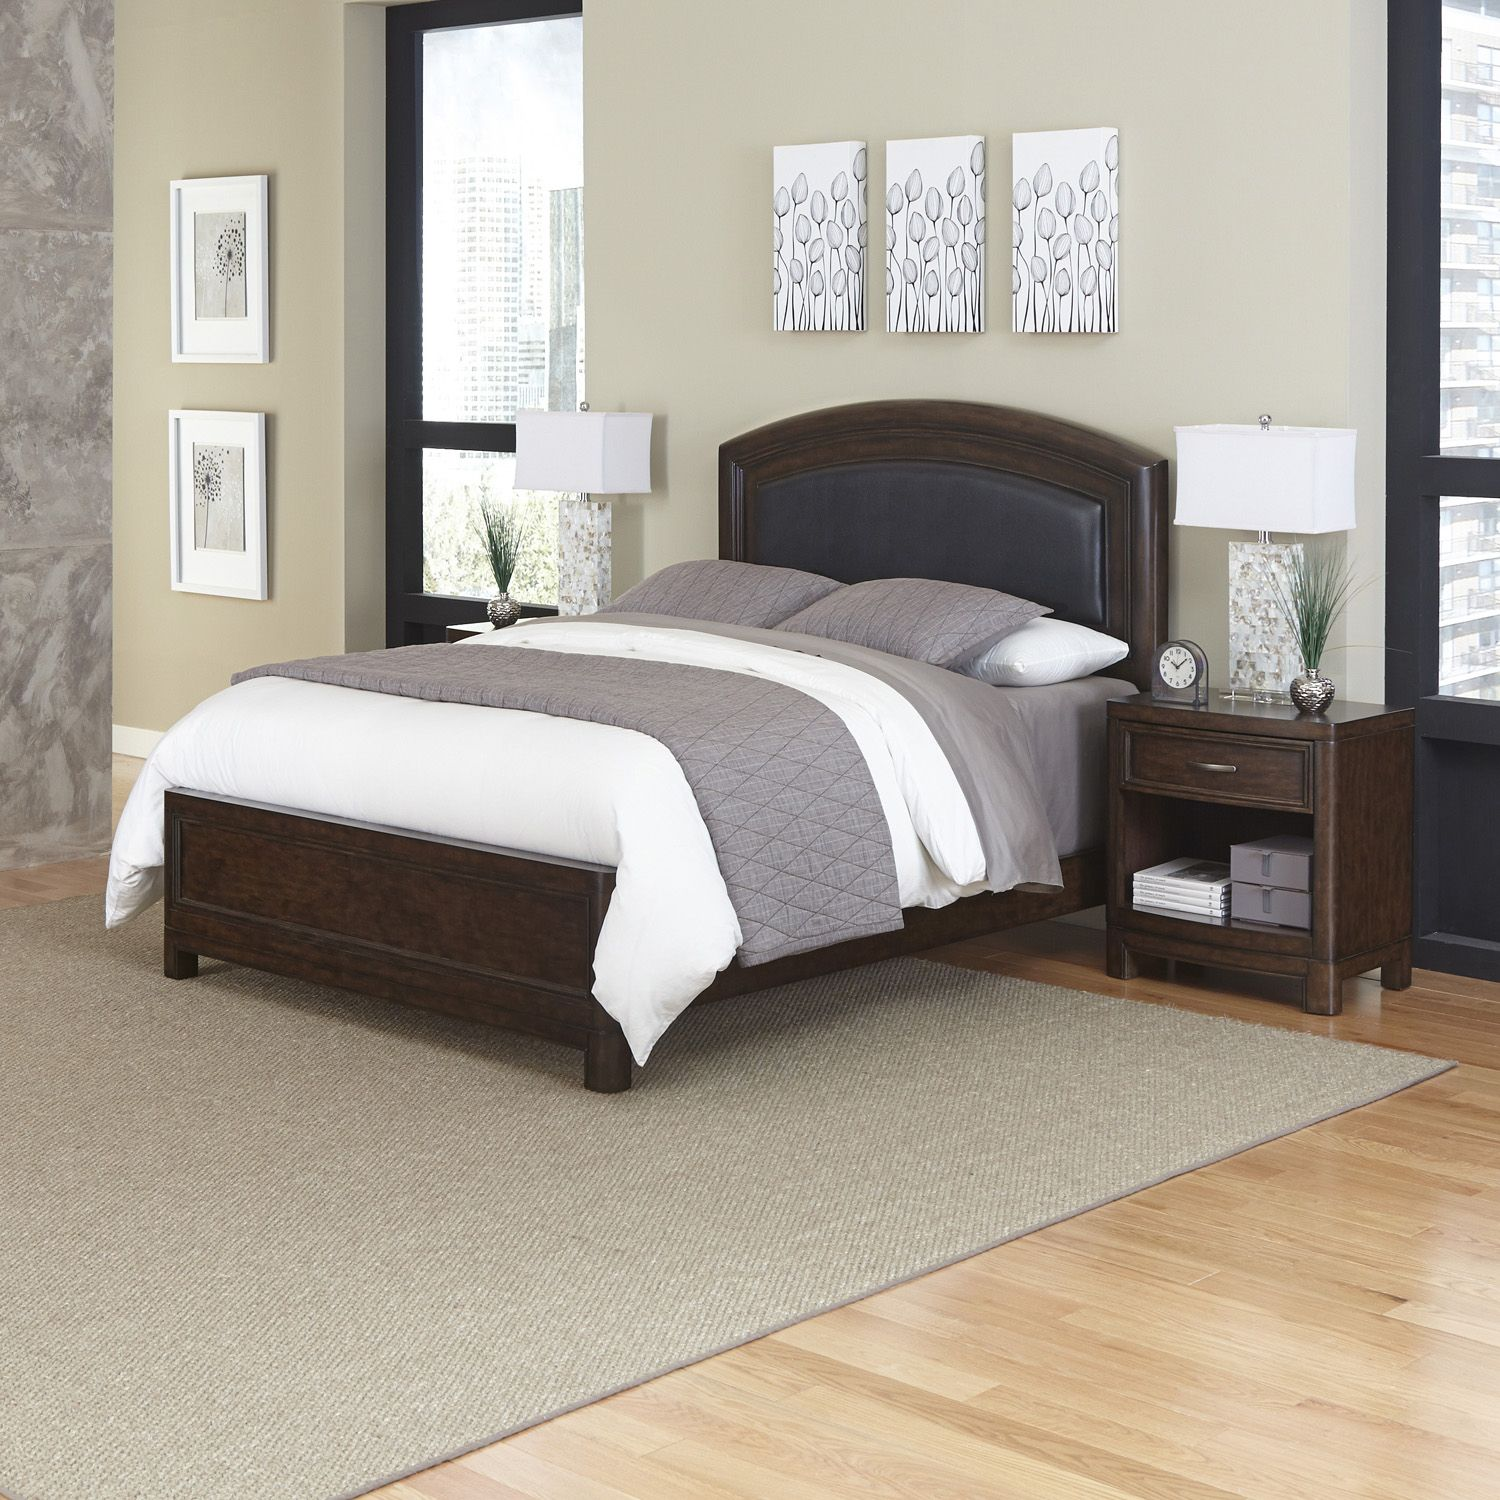 Superb Home Styles Crescent Hill piece Leather Upholstered Bed and Two Nightstands Set